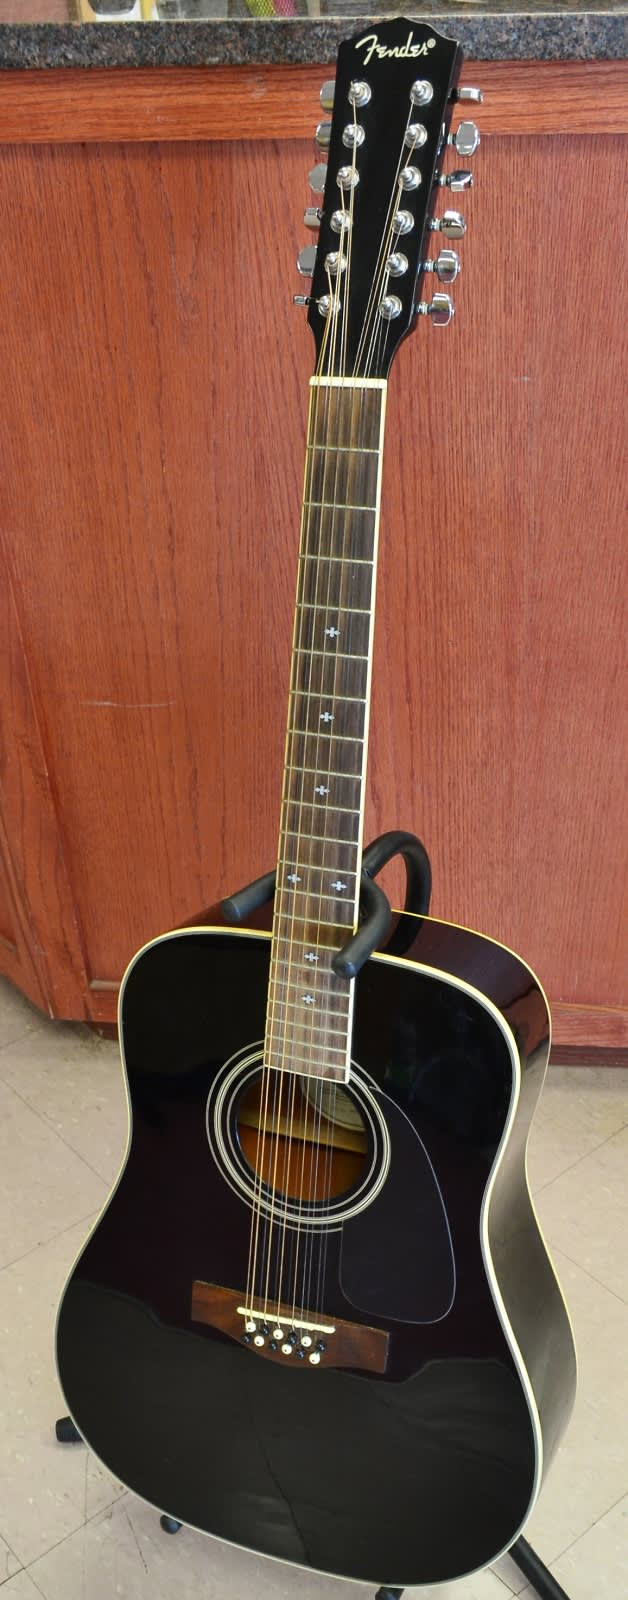 fender dg 16e 12 string acoustic electric guitar black reverb. Black Bedroom Furniture Sets. Home Design Ideas